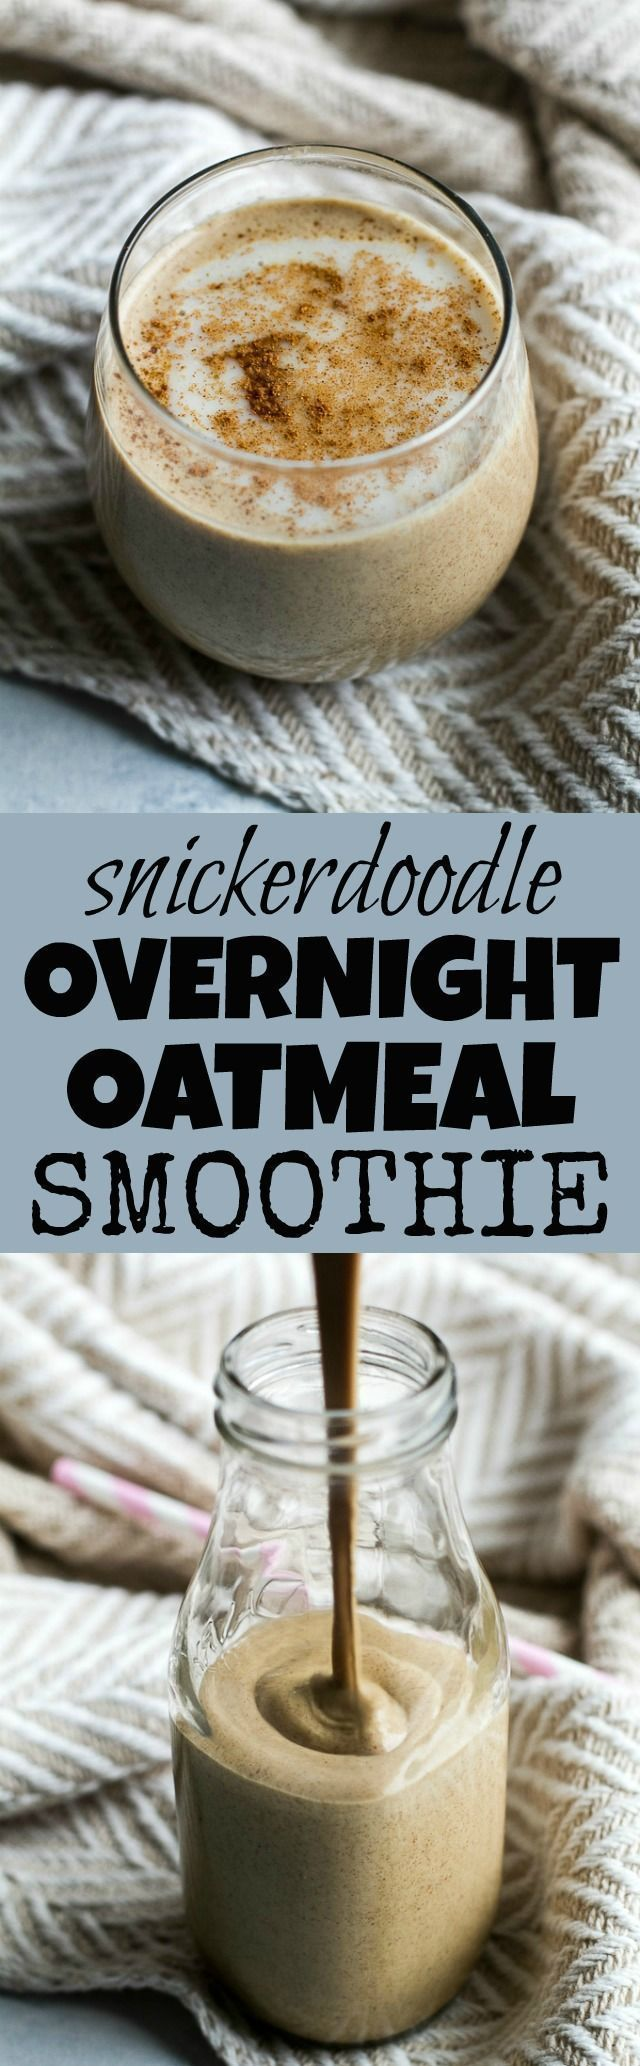 Take overnight oats to a whole new level of deliciousness with this thick and creamy Snickerdoodle Overnight Oatmeal Smoothie. It's creamy, comforting, and packed with healthy ingredients for a perfect breakfast or snack {vegan, gluten-free} | runningwith